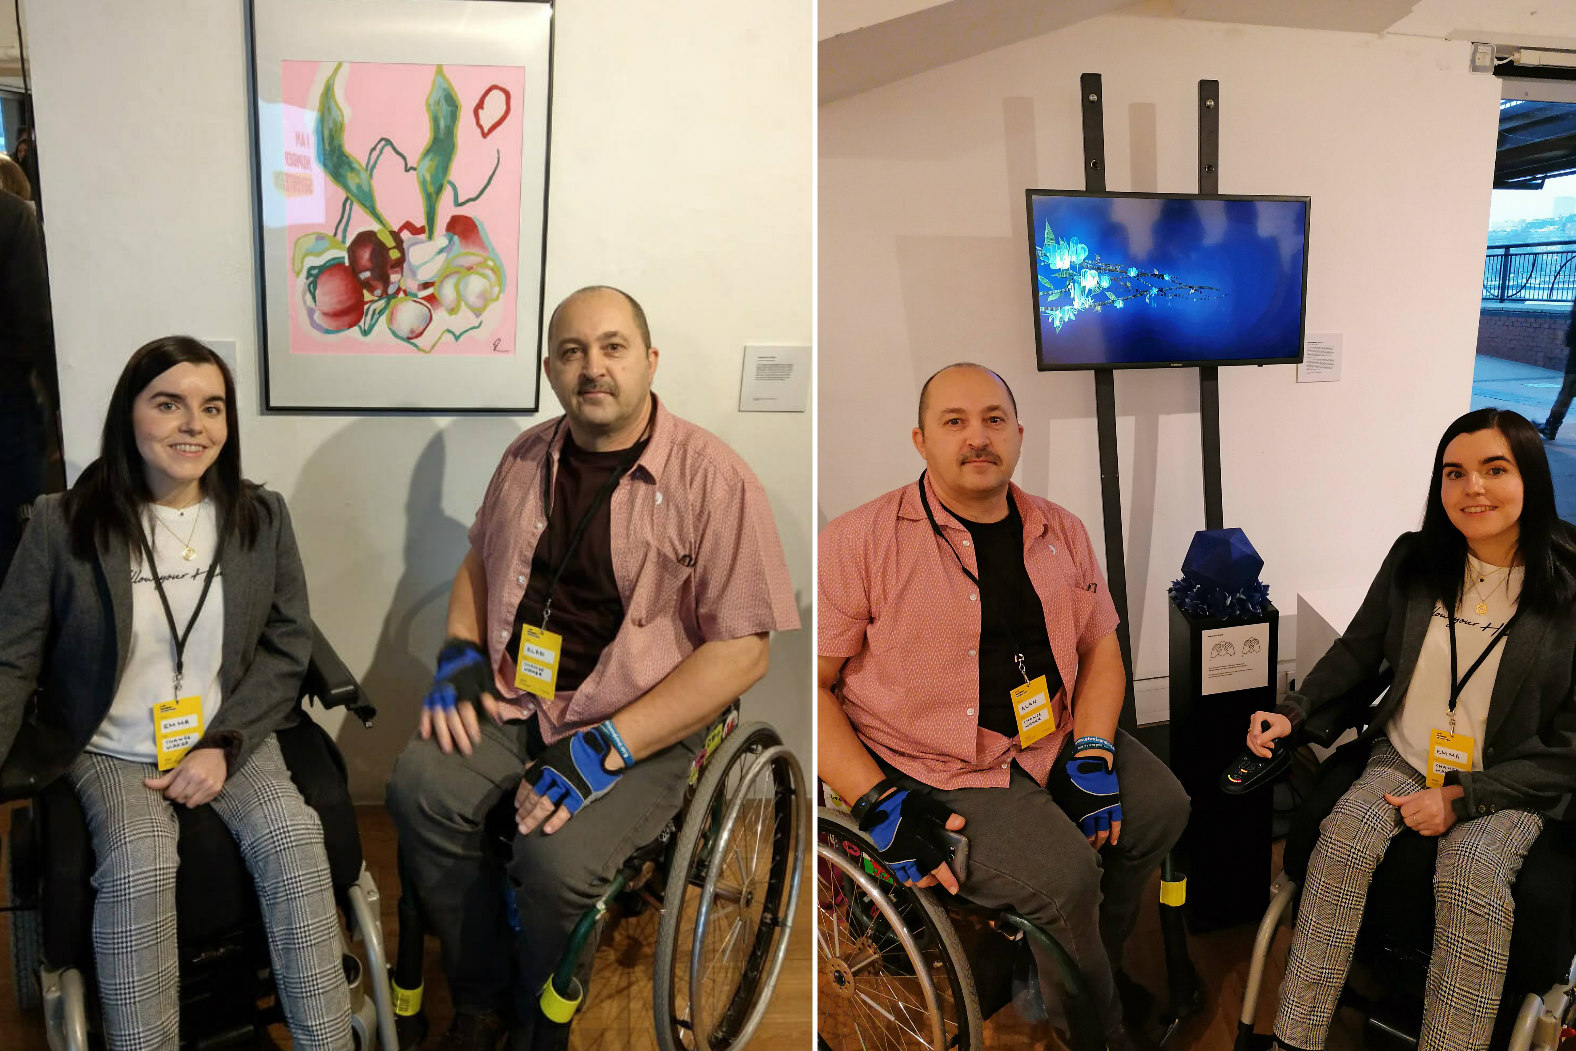 Photo collage: First photo is Emma and Alan, both wheelchair users sitting in front of Emma's artwork. Second photo is Emma and Alan again sitting in front of Alan's artwork.